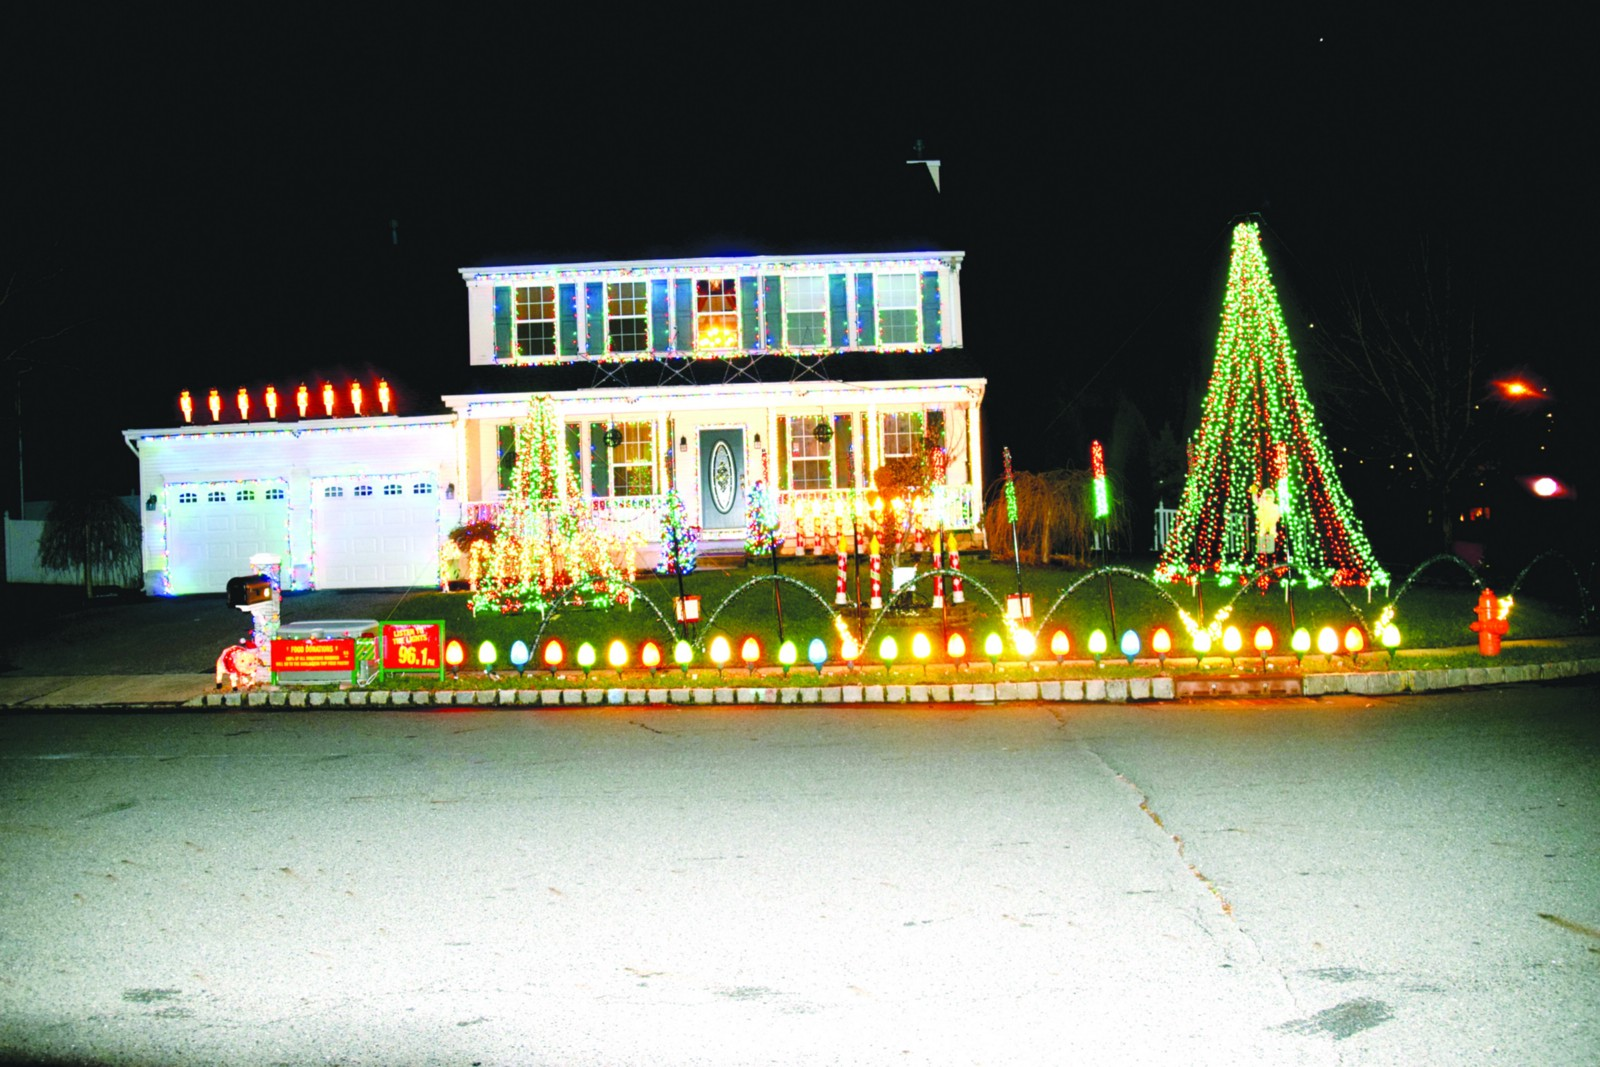 burlington township family lights up house for the holidays with 30000 lights